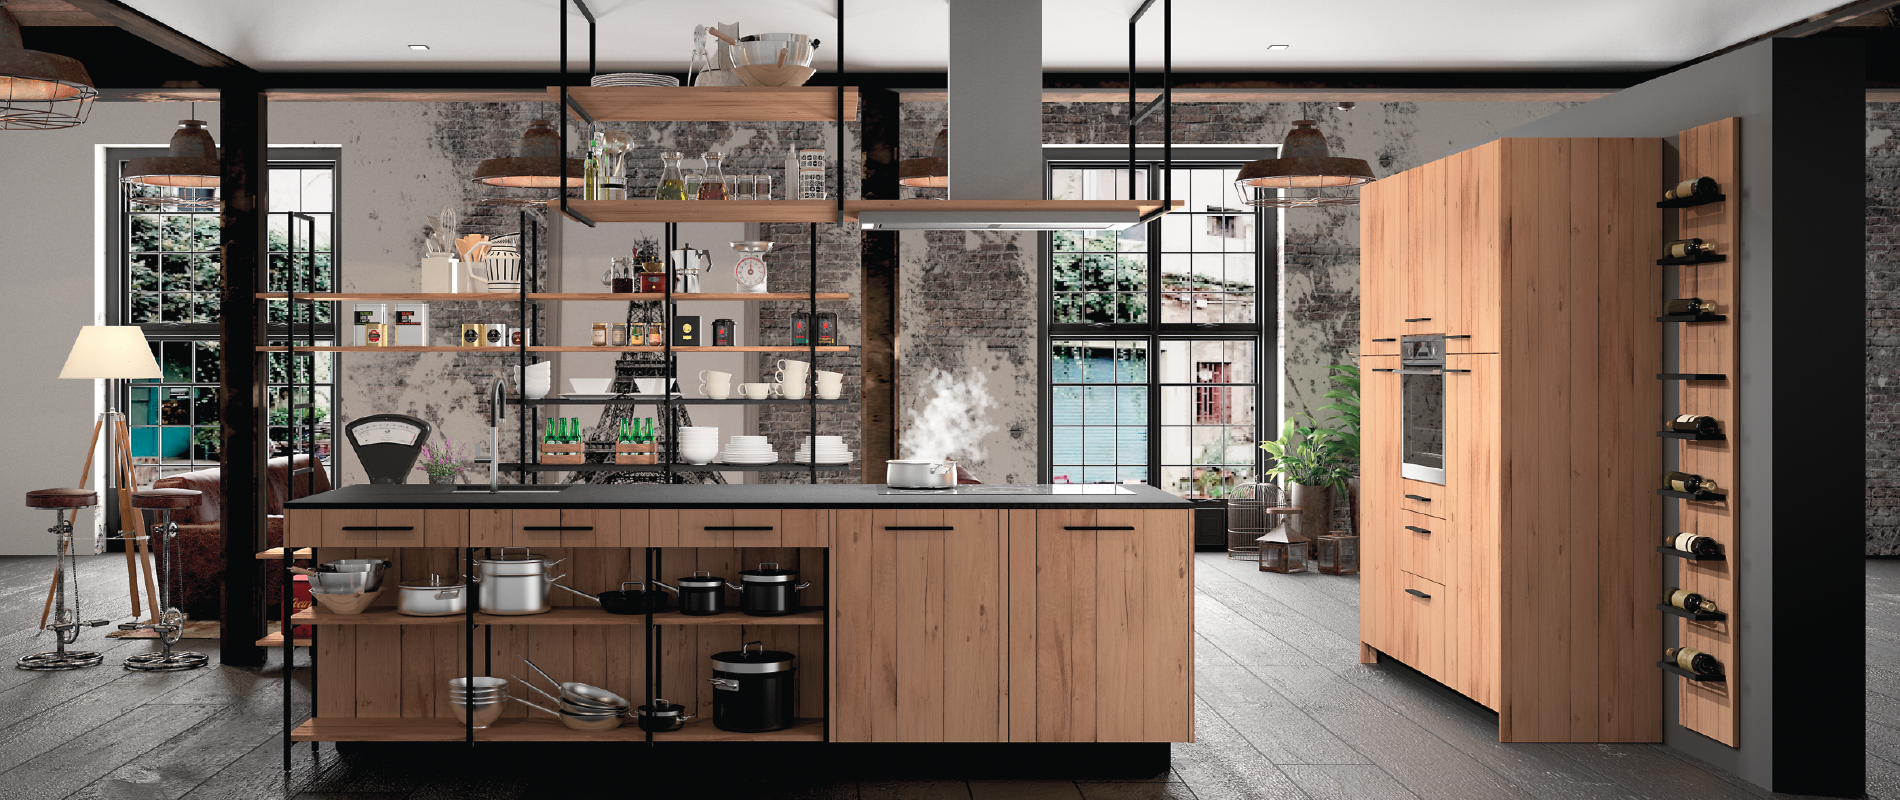 Esquisse design ind cuisines morel for Comcuisine style atelier industriel